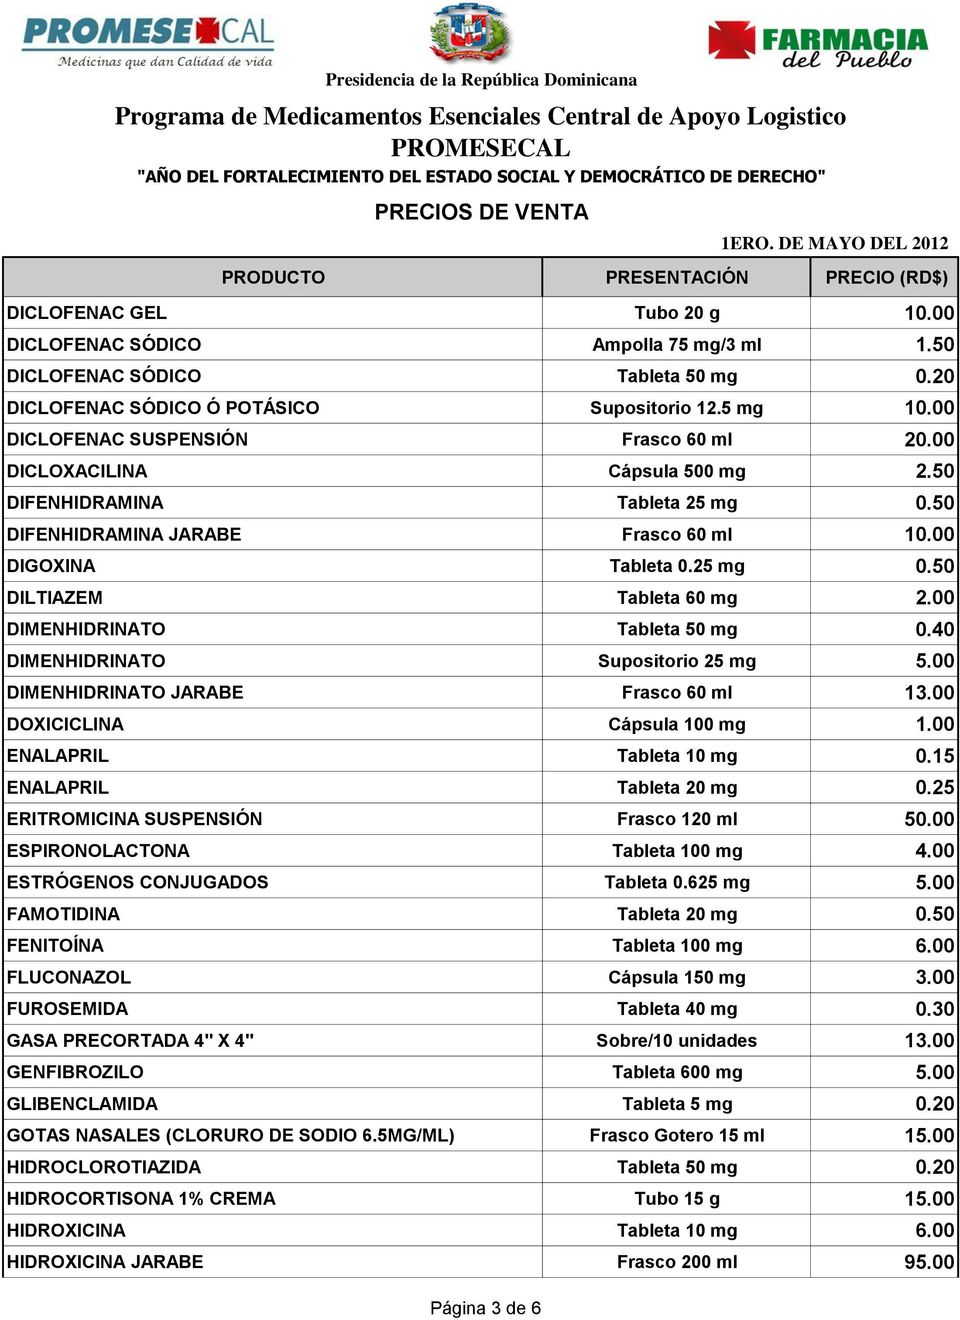 00 DIMENHIDRINATO Tableta 50 mg 0.40 DIMENHIDRINATO Supositorio 25 mg 5.00 DIMENHIDRINATO JARABE Frasco 60 ml 13.00 DOXICICLINA Cápsula 100 mg 1.00 ENALAPRIL Tableta 10 mg 0.